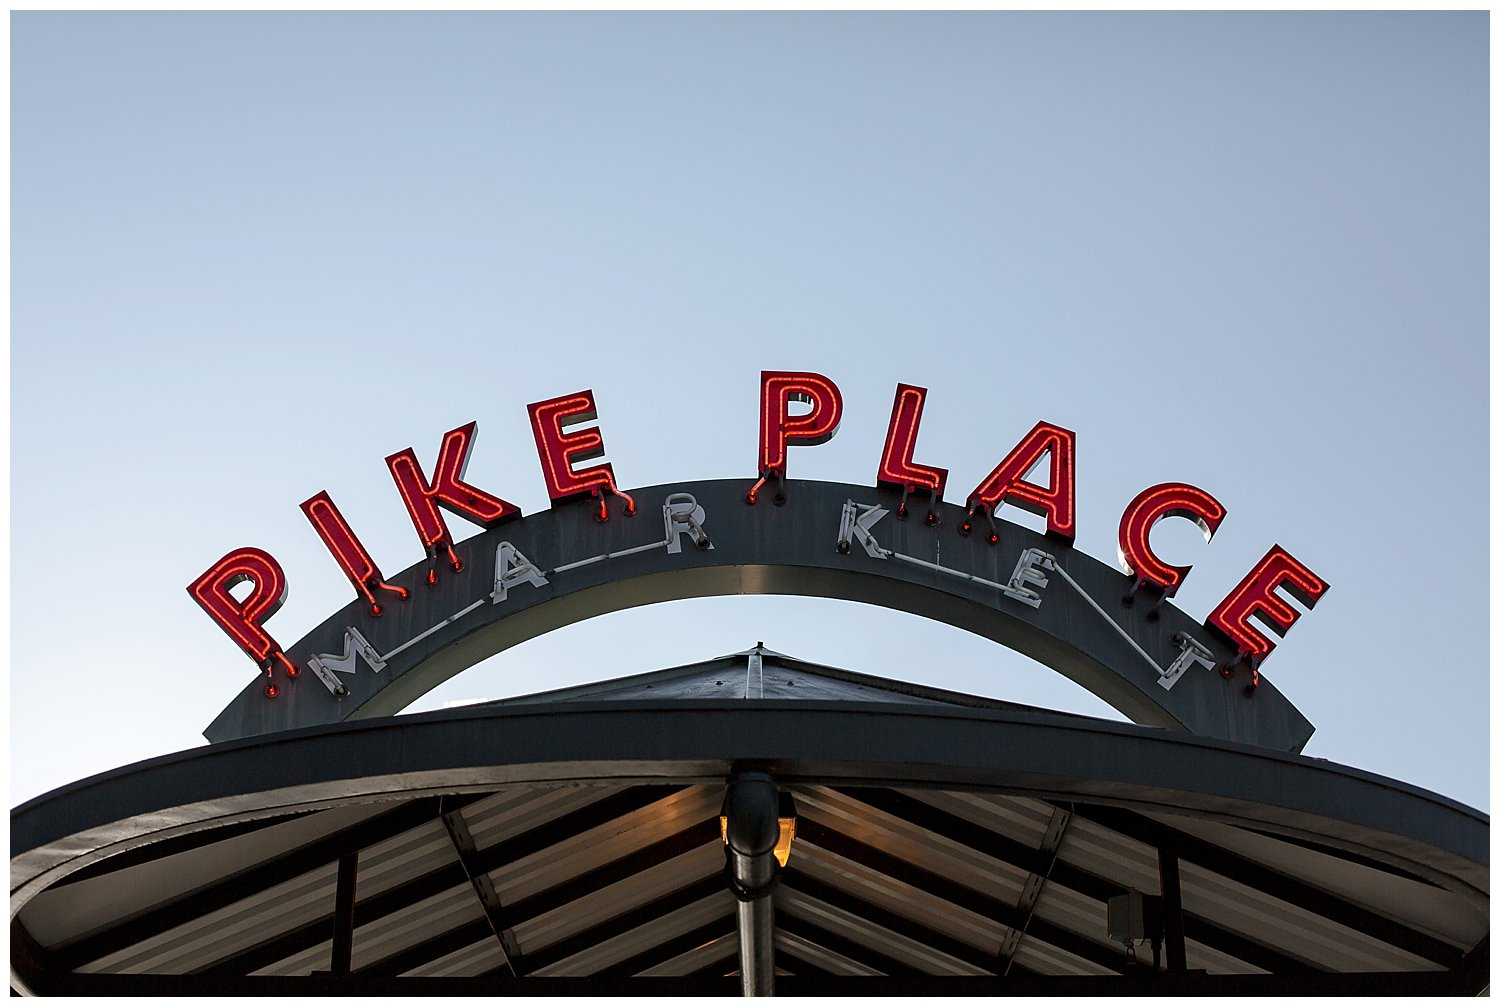 pikes market sign Seattle Washington